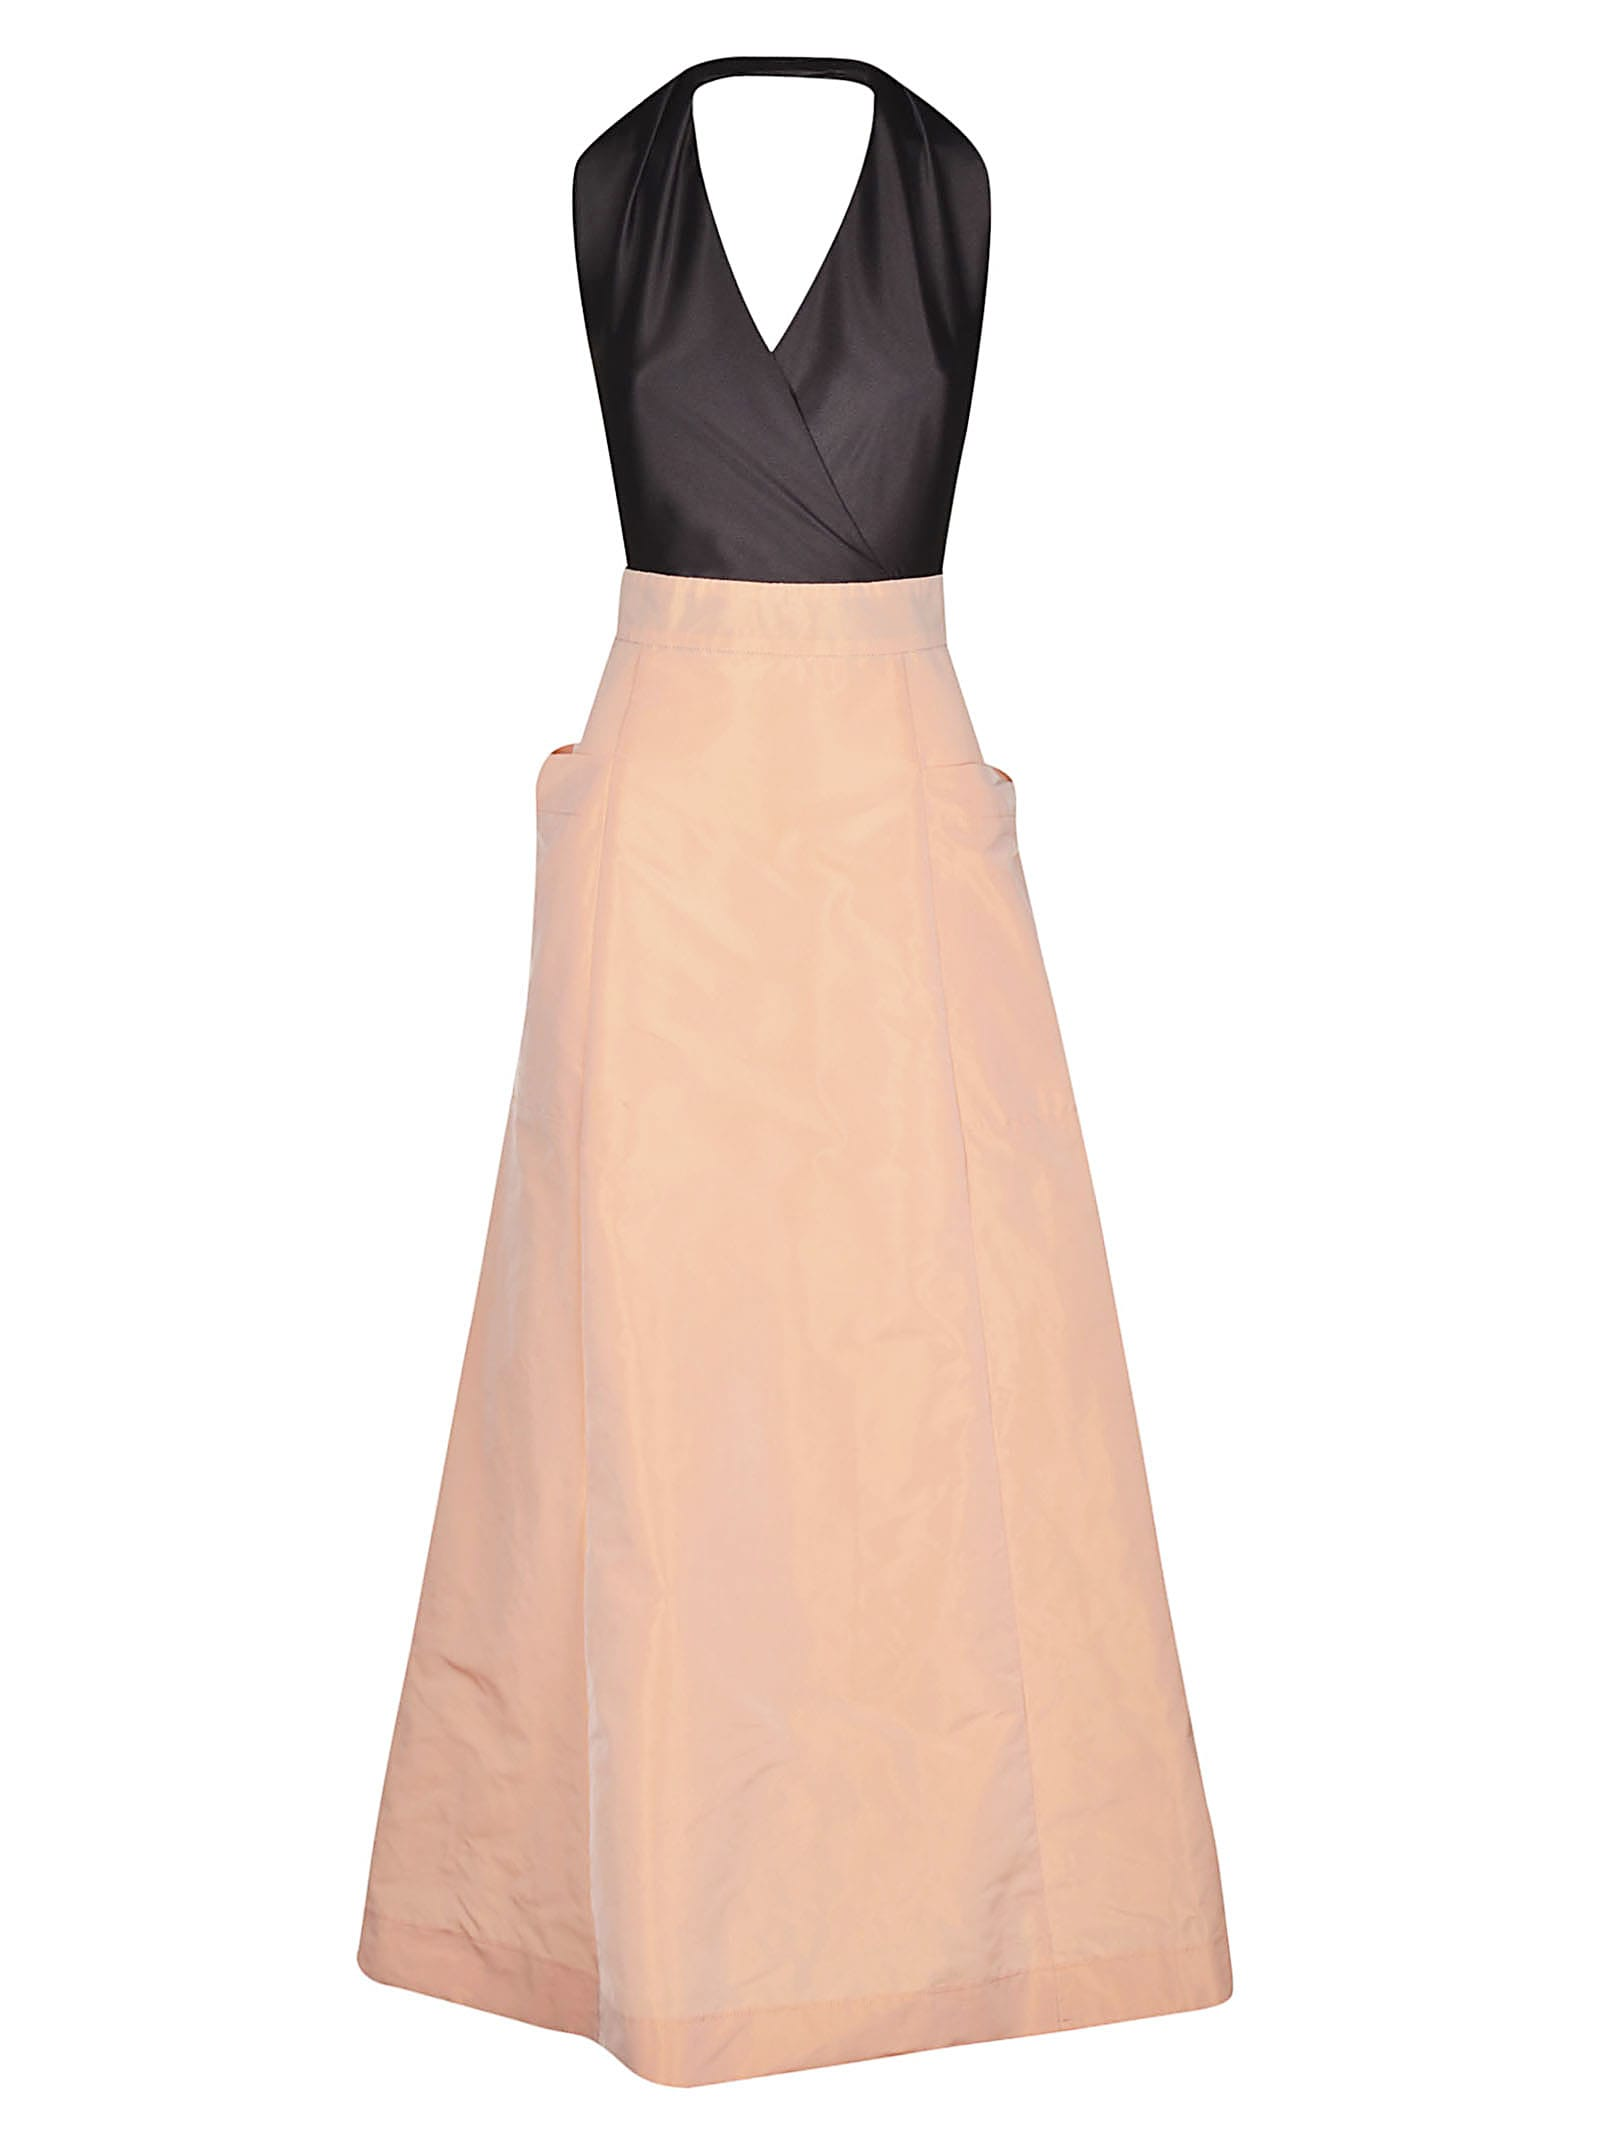 Stephan Janson Aix Dress